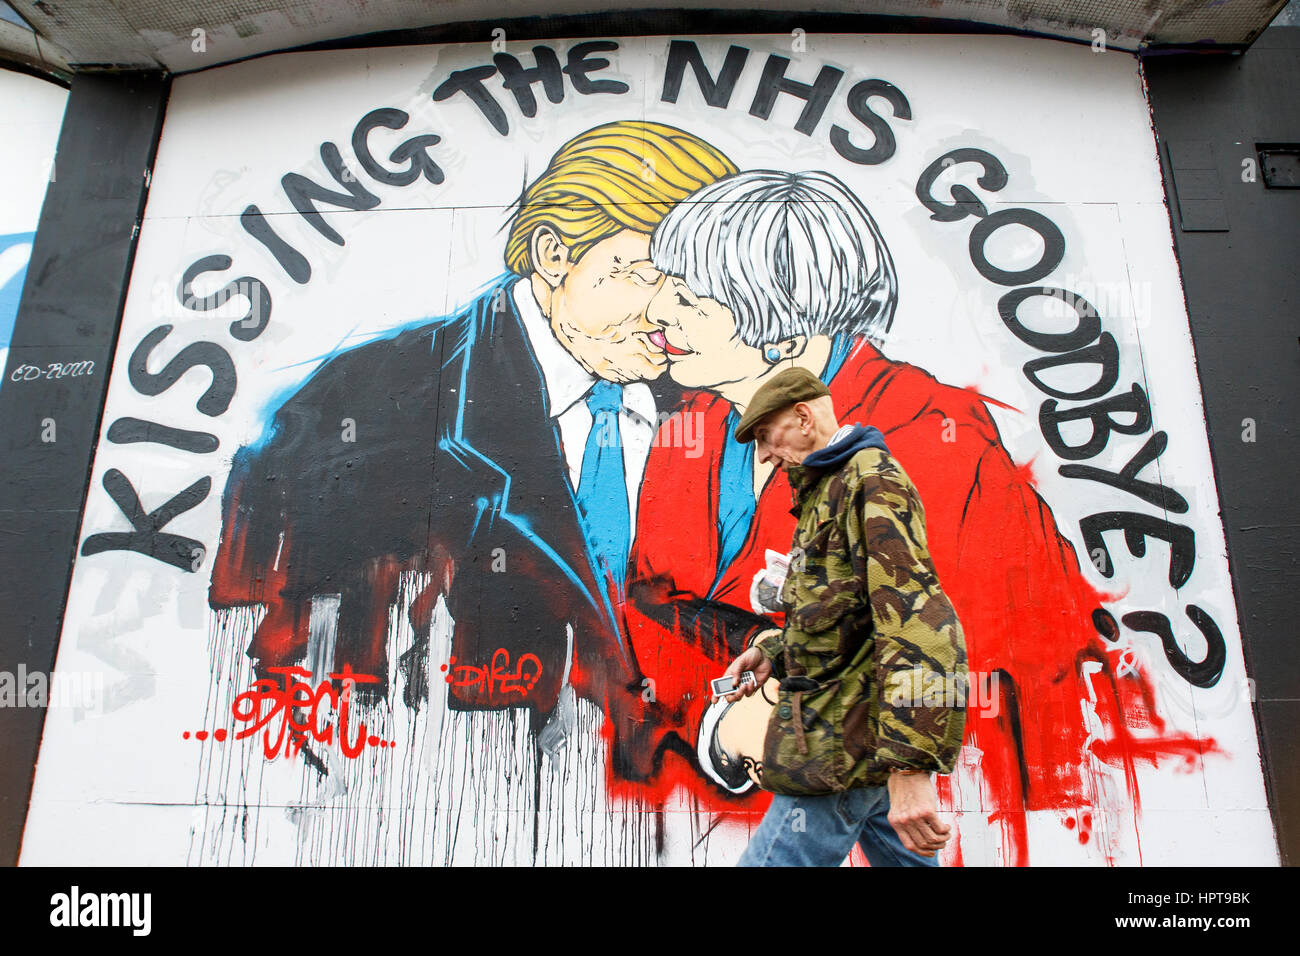 Bristol, UK. 24th Feb, 2017. A man is pictured walking past a new piece of street art warning about the death of - Stock Image